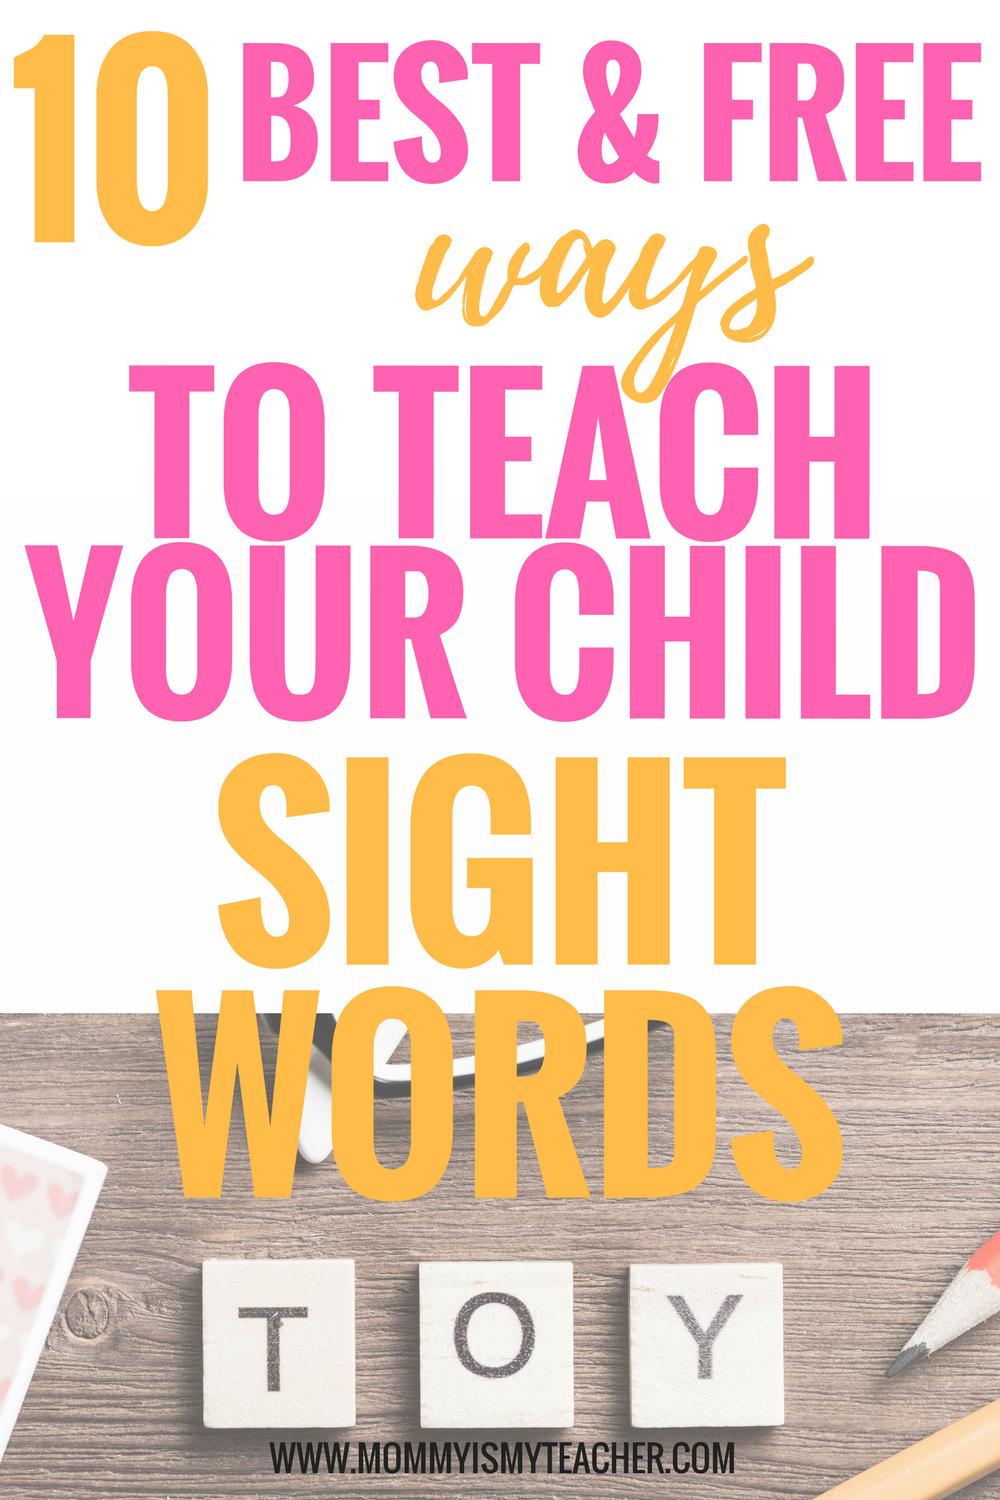 wow I love this list of the best free and fun sight word activities for preschool and kindergarten! My son will love this! saving for later.